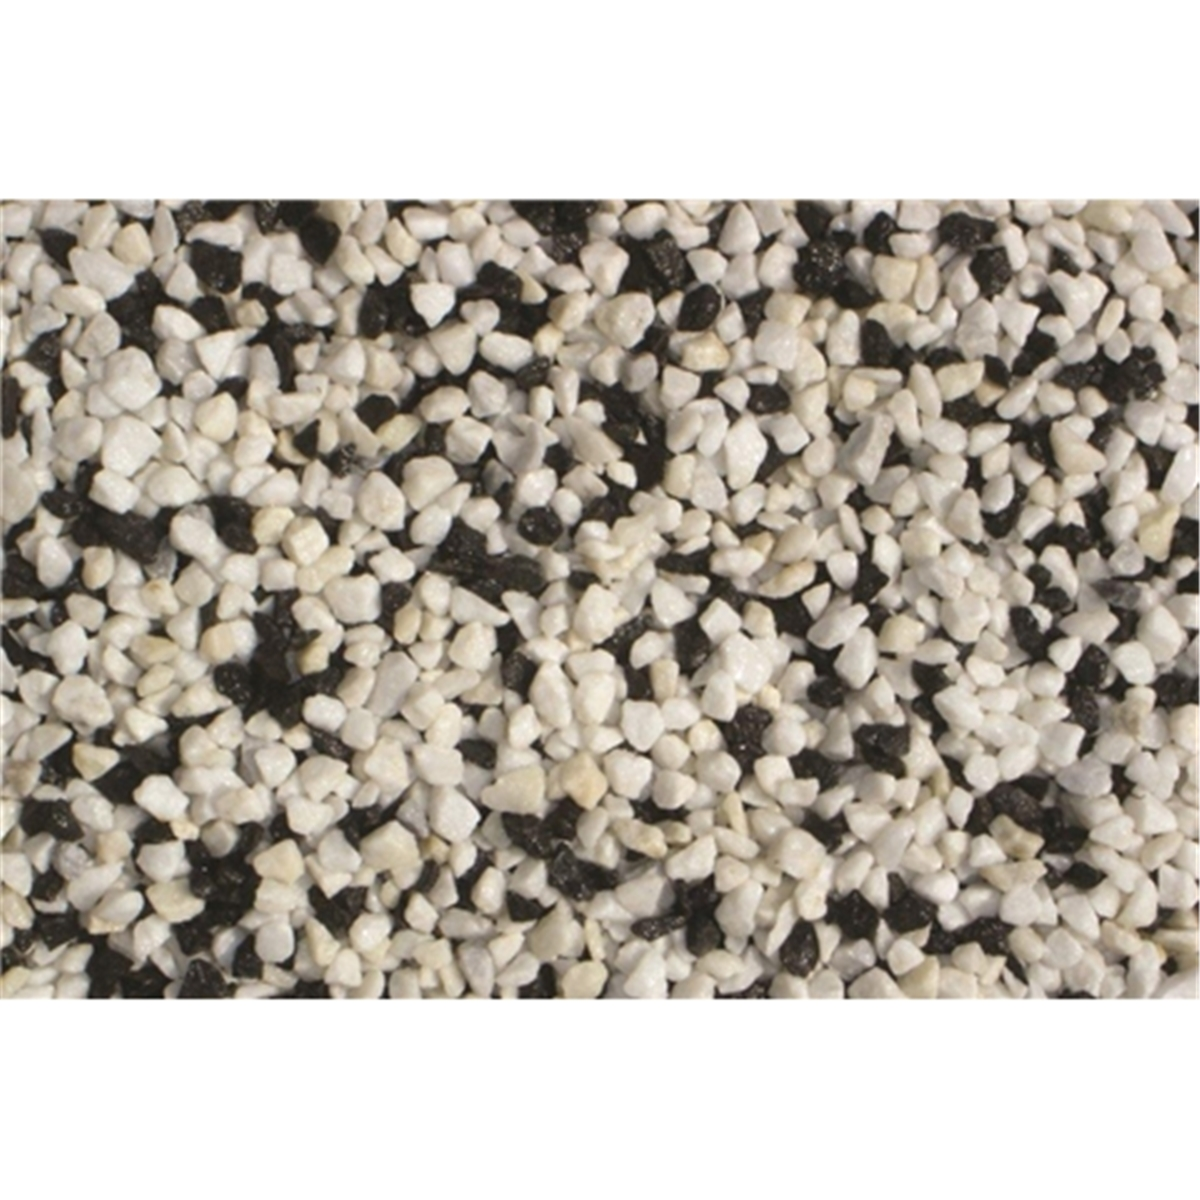 bulk bag 850kg black and white mix gravel. Black Bedroom Furniture Sets. Home Design Ideas